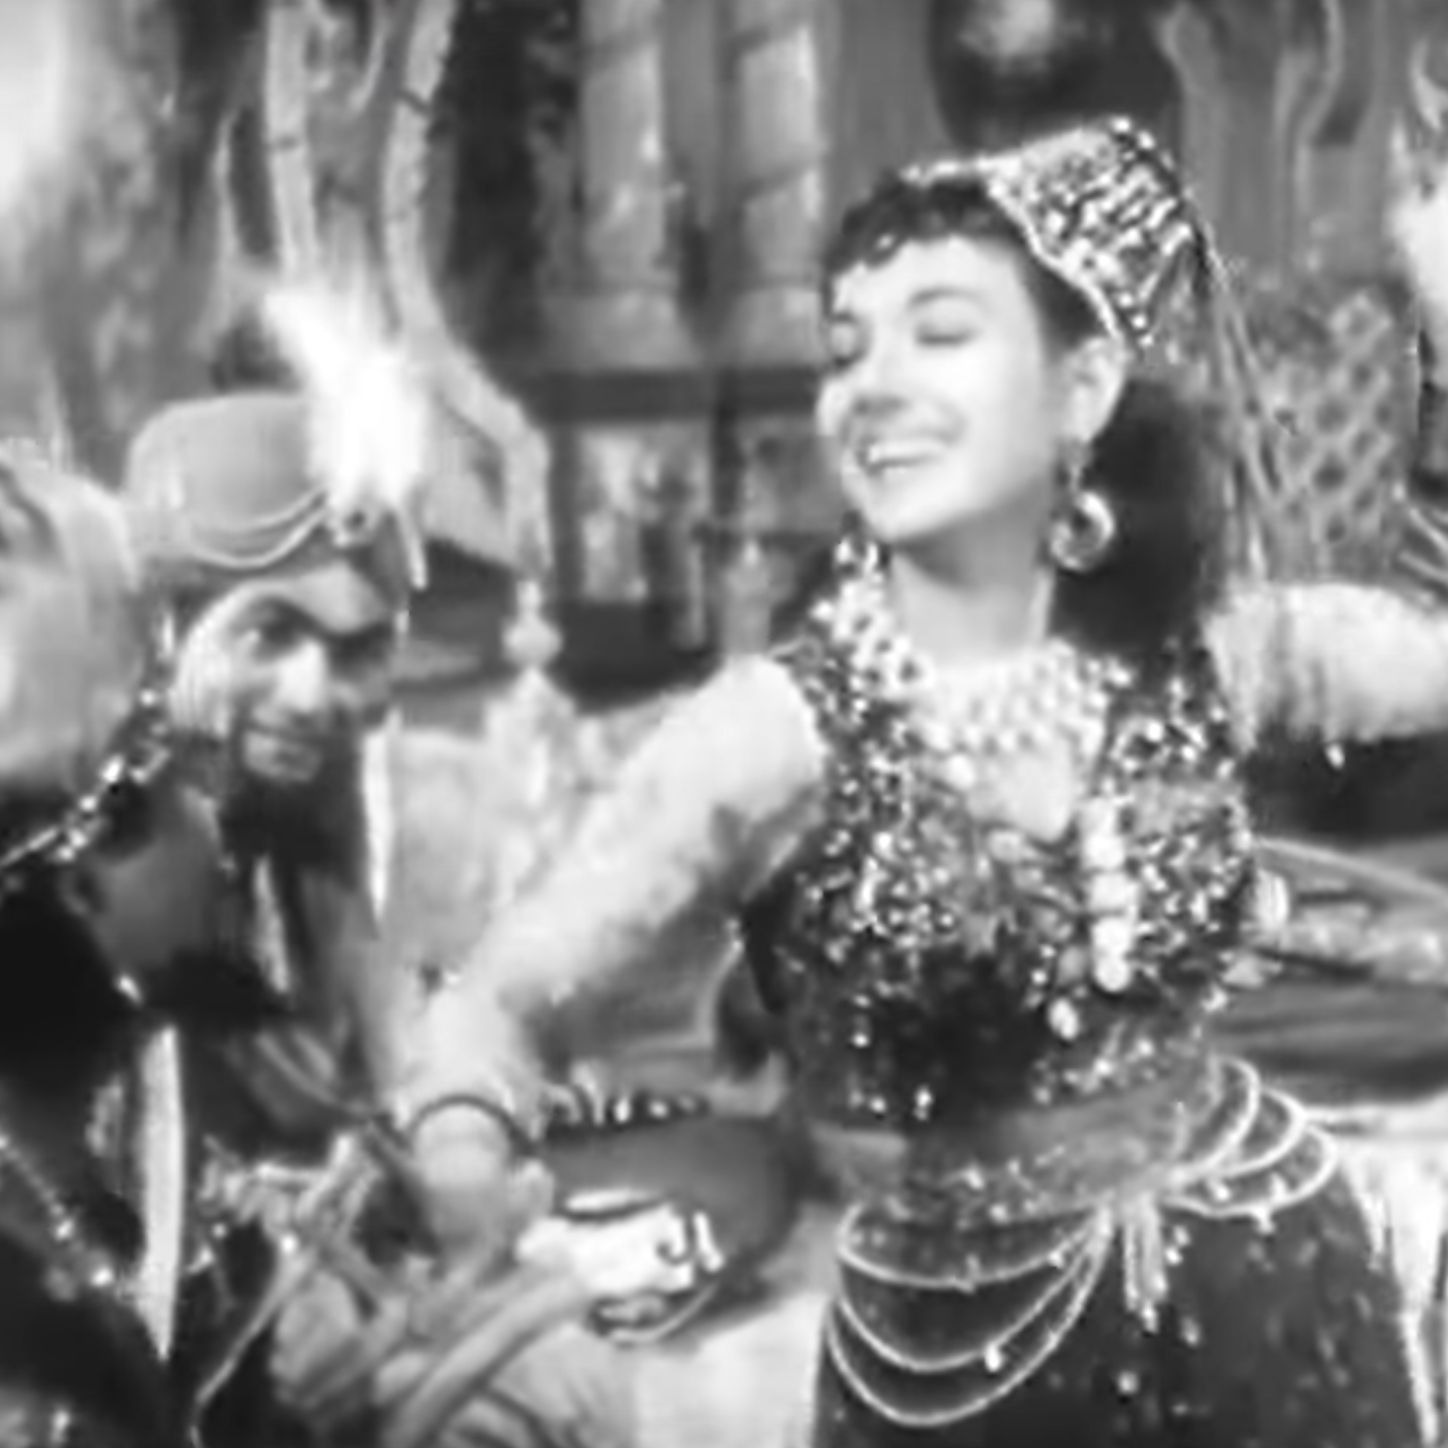 1001 Nights at the Cinema | Samhita Sunya